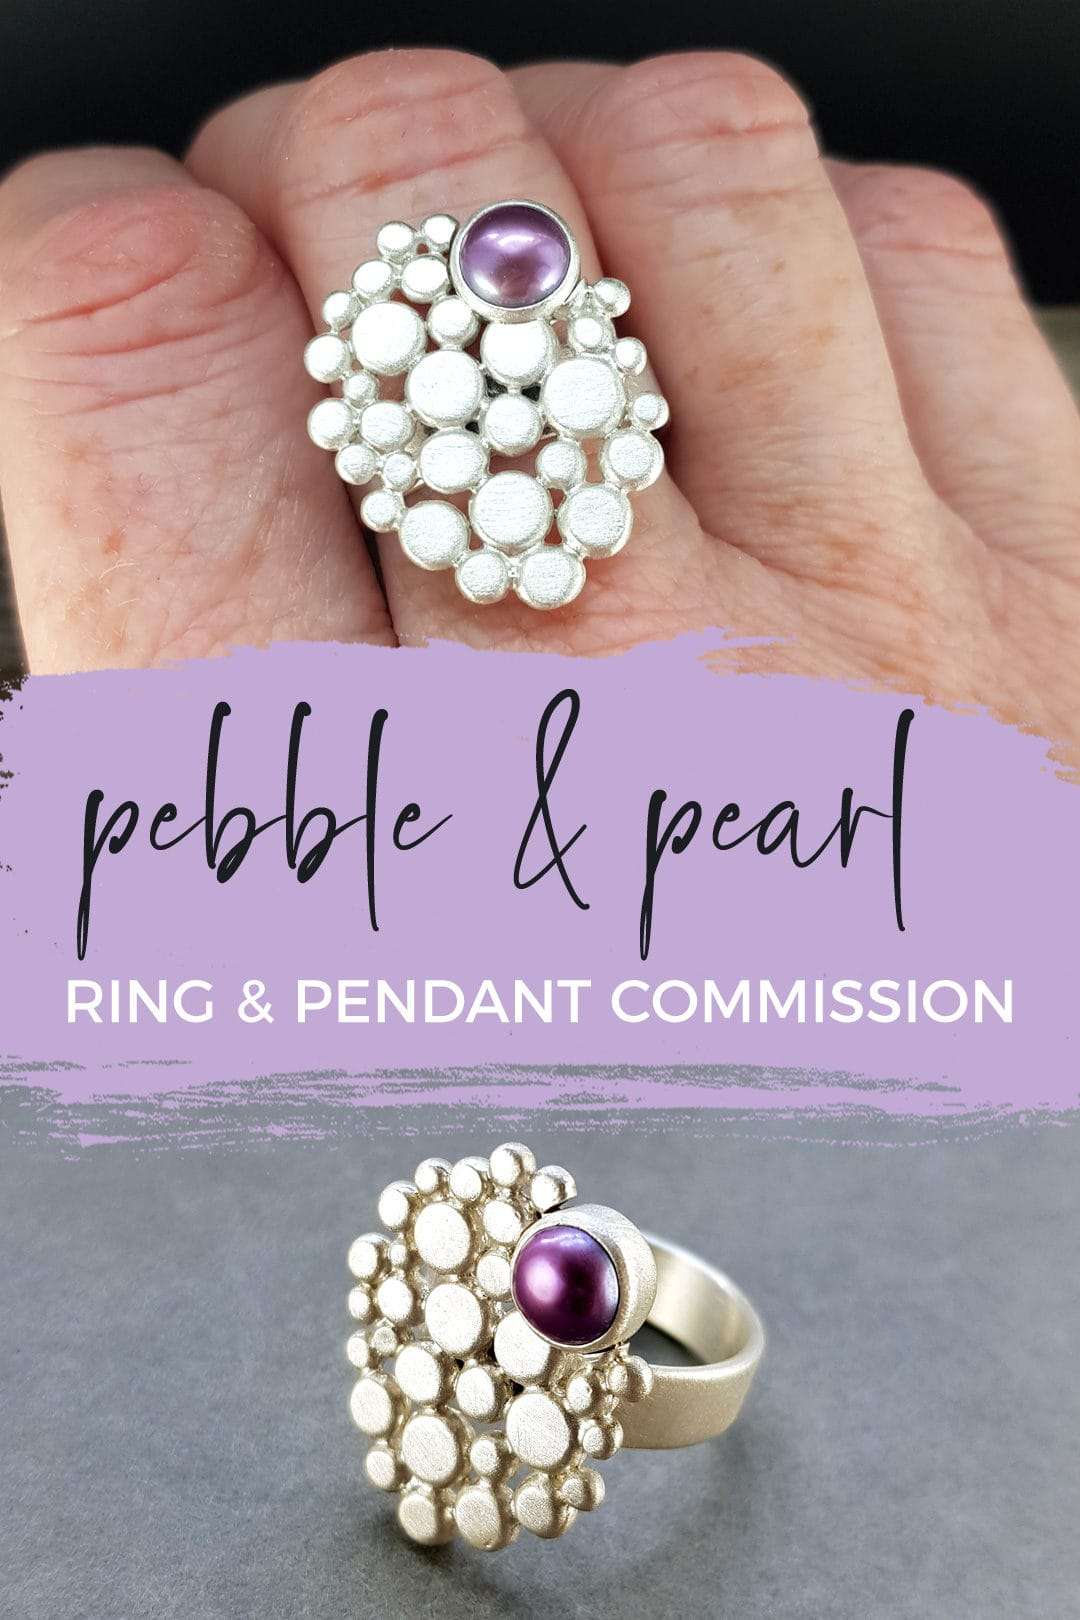 Multi pebble and pearl ring commission